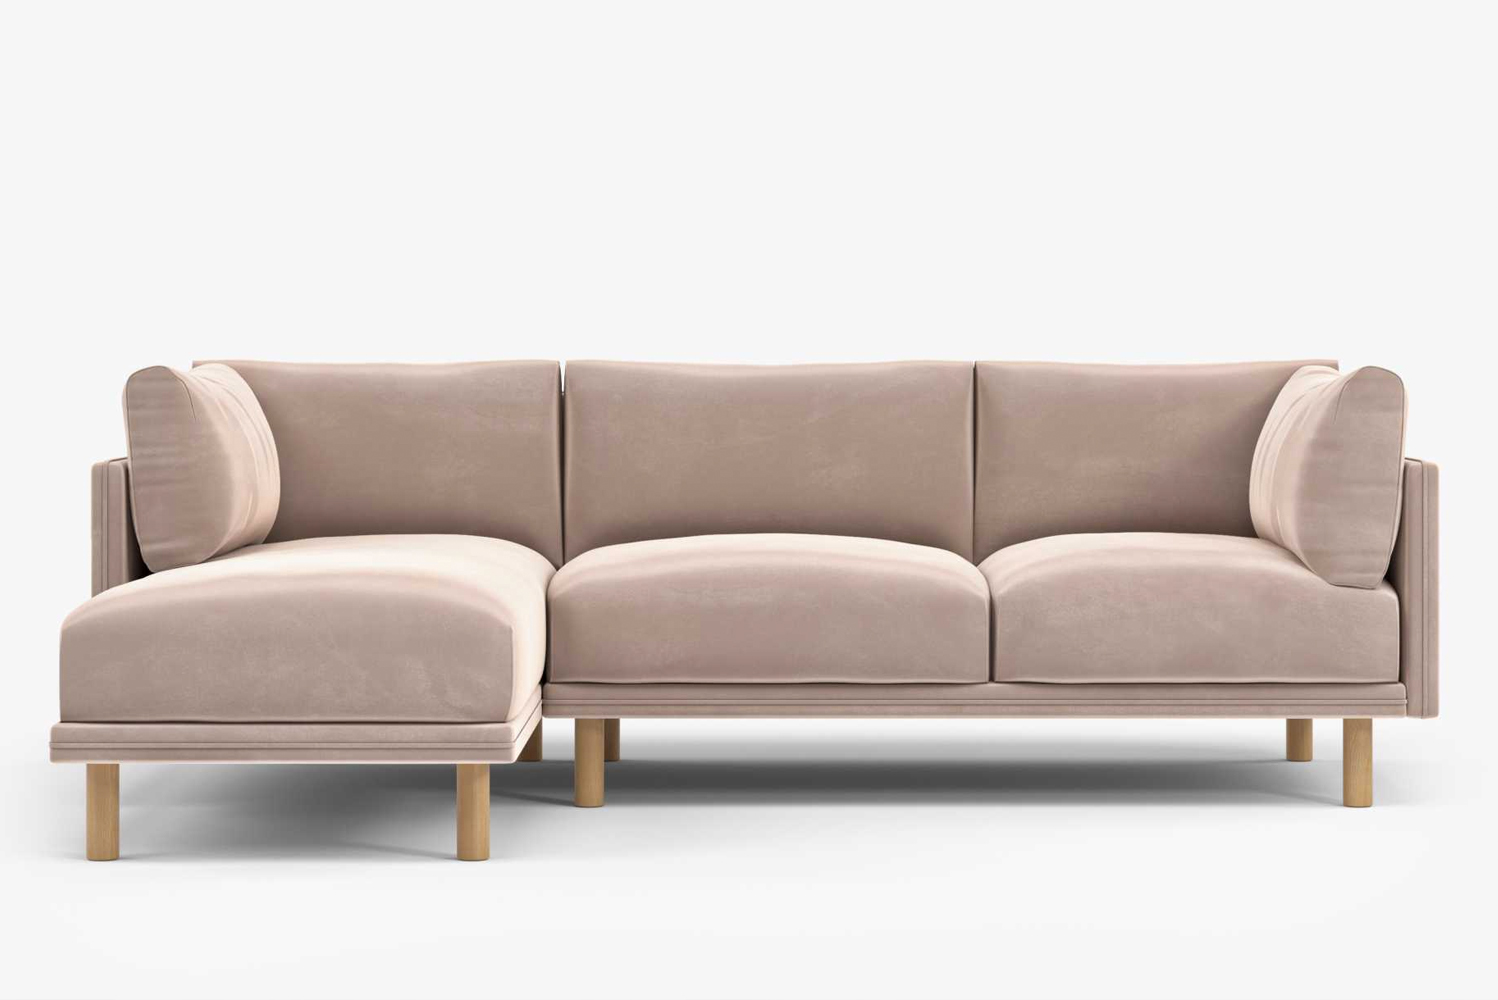 Rove Concepts launched Anderson, a traditional sectional with subtle Nordic whimsy.